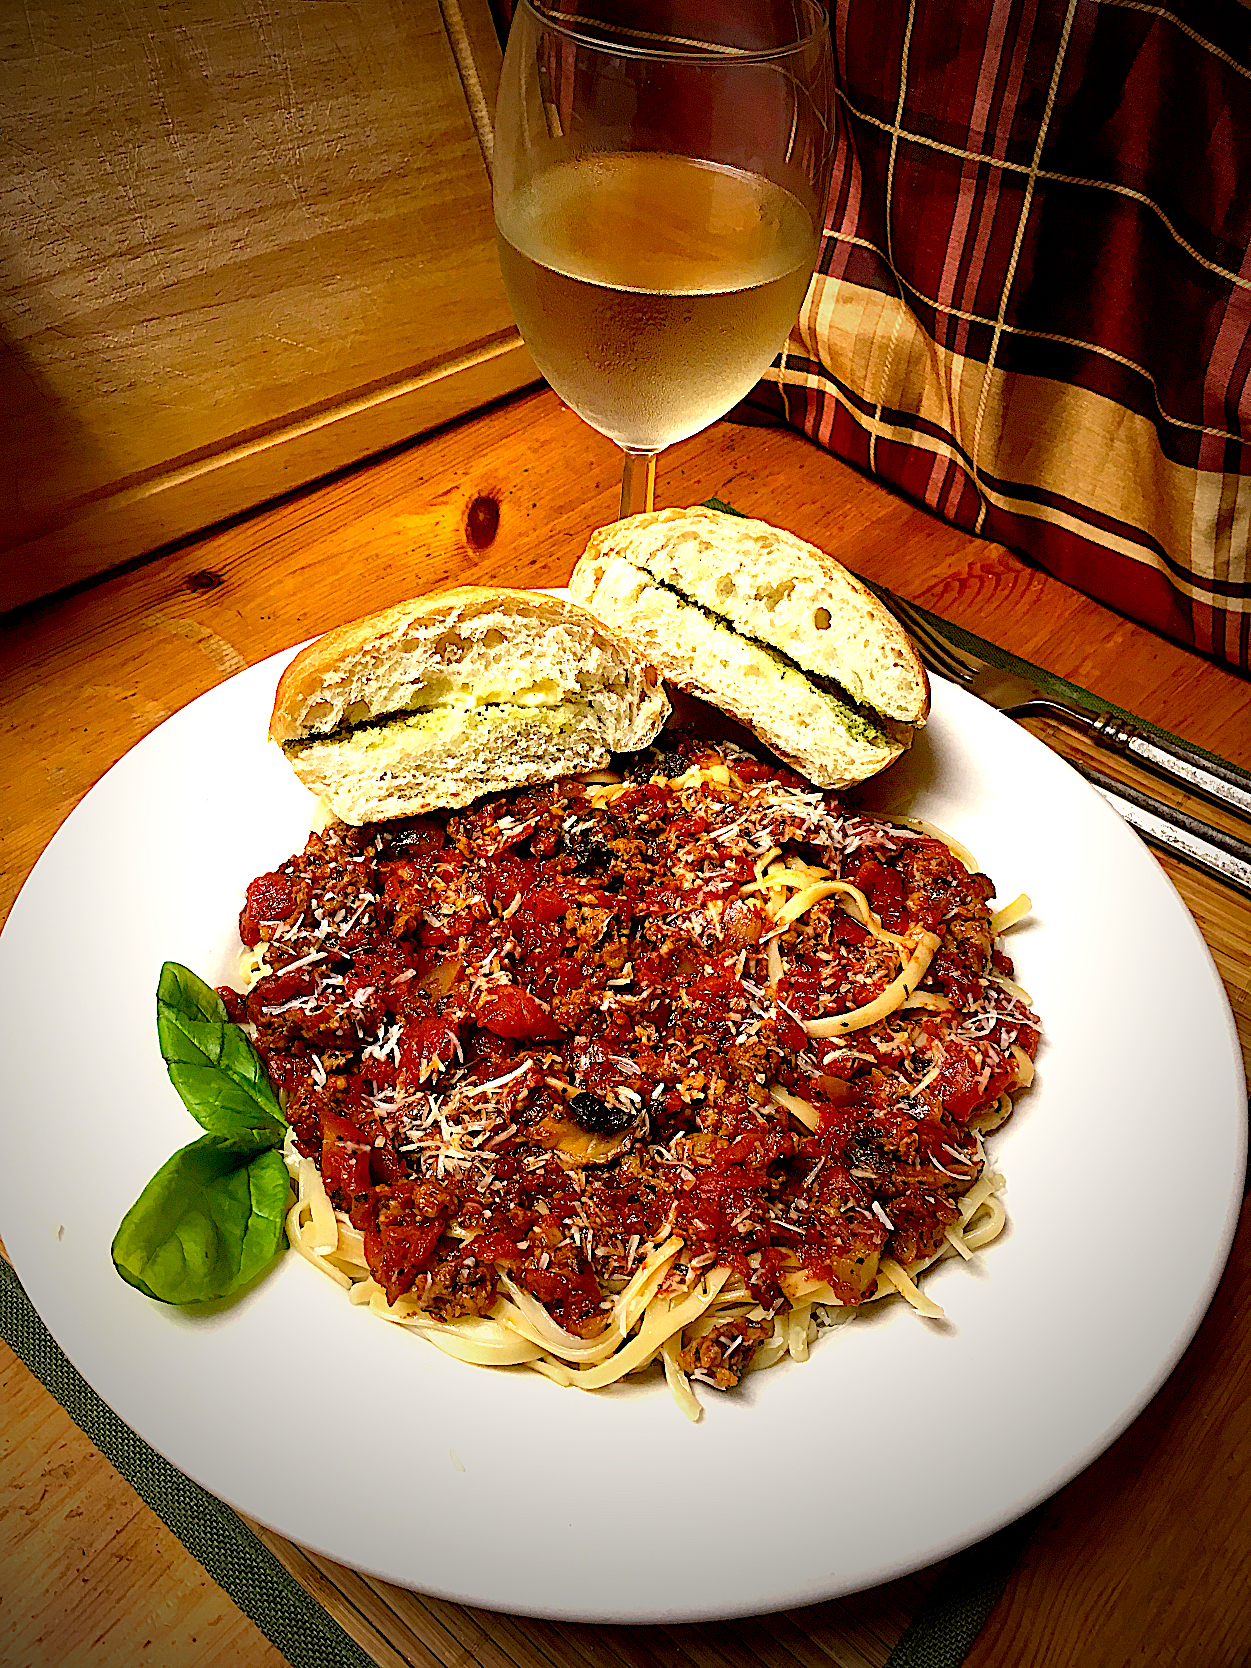 Chopped Tomato Marinara, With Olive Oil, Mushrooms, Onions, Green & Black Pepper, Basil Served Over Linguini with Ciabatta Bread